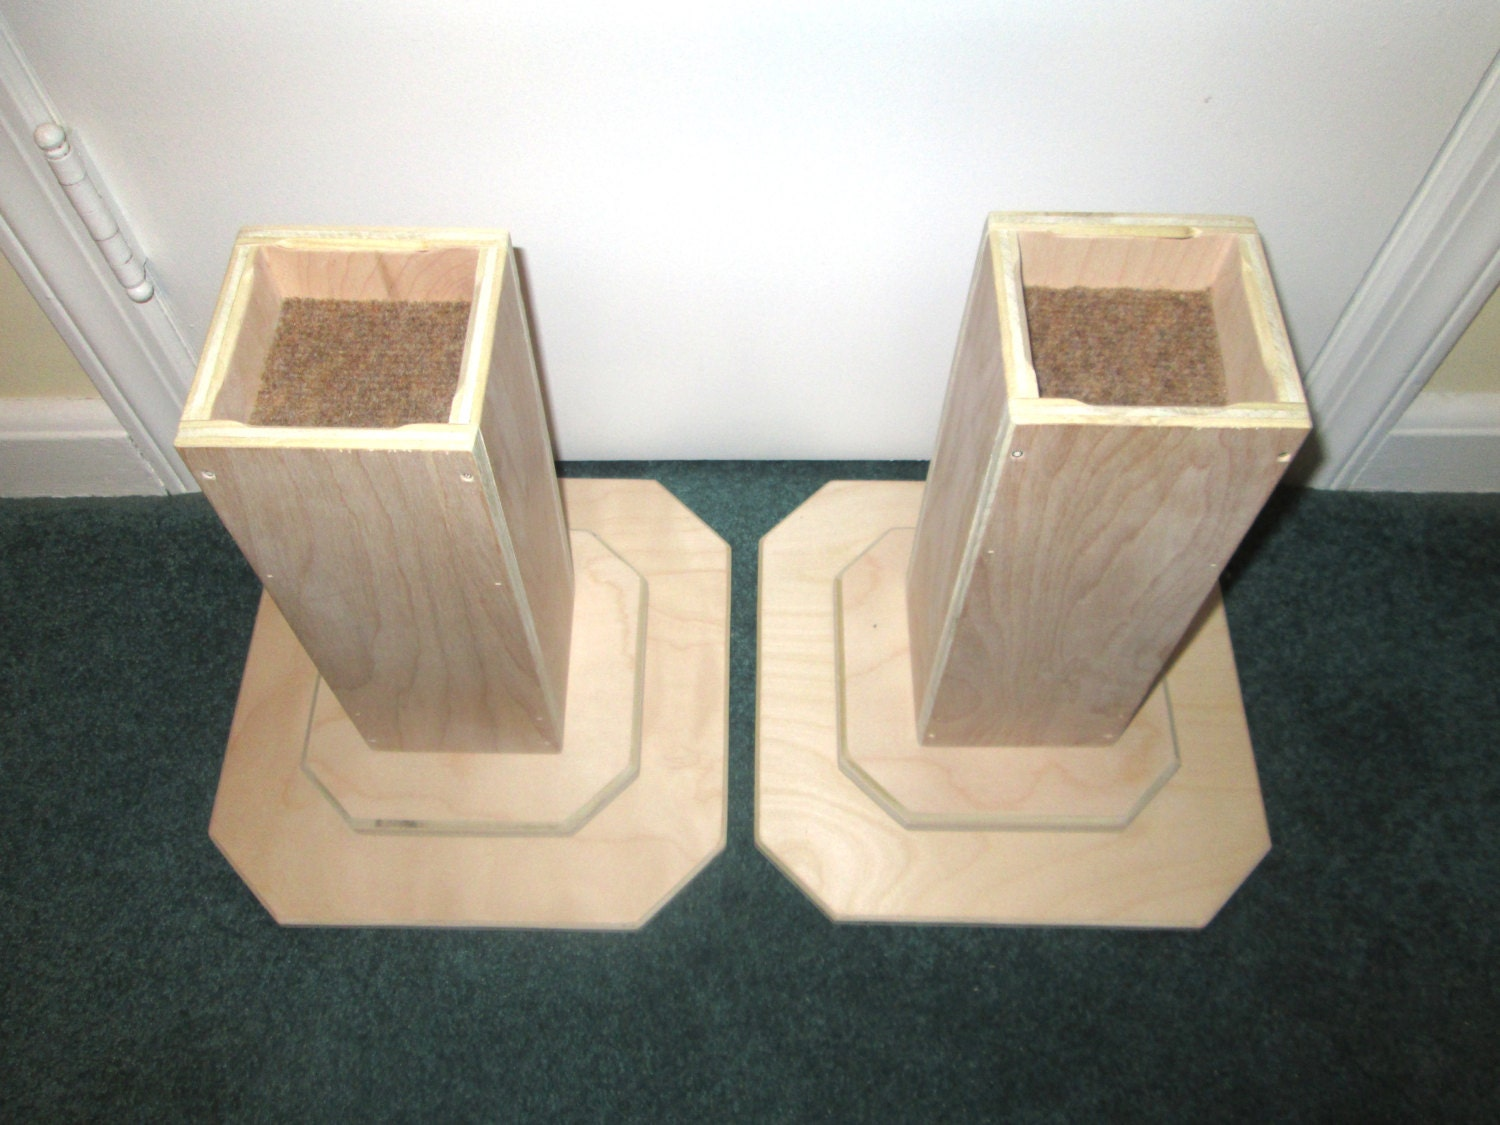 Dorm room bed risers inch all wood construction by